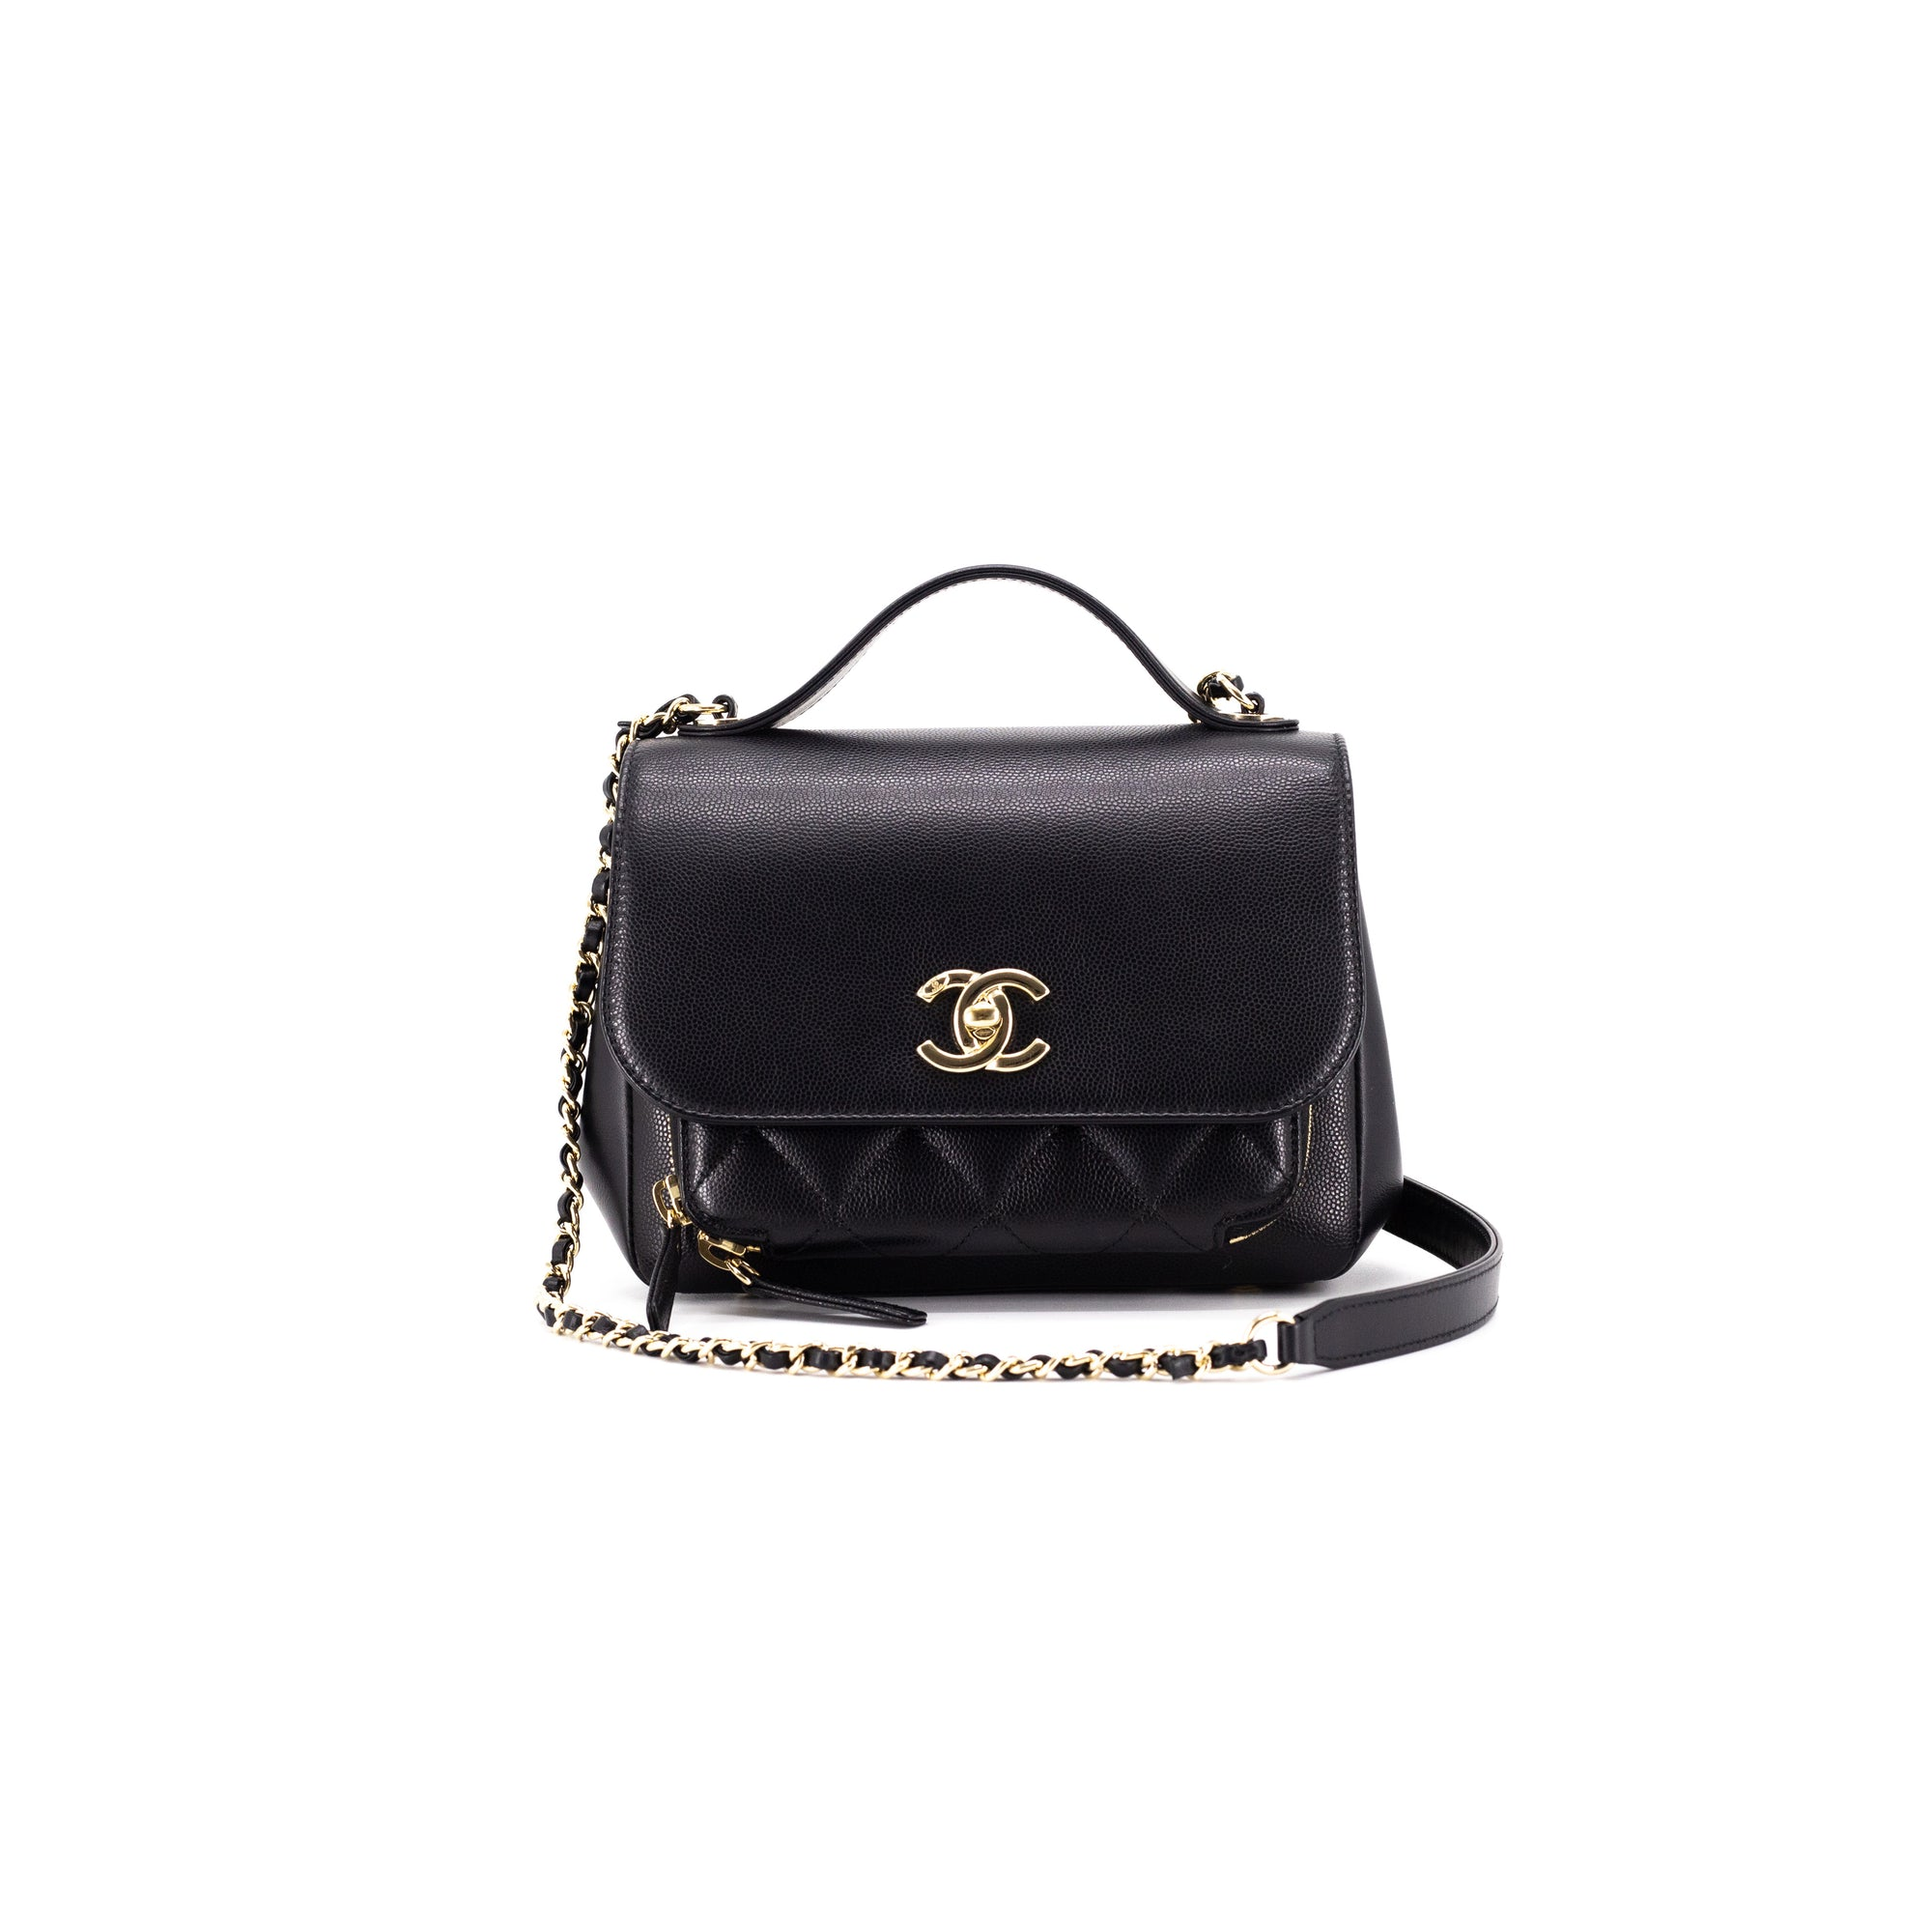 d13cf064edc9 Chanel Small Quilted Caviar Business Affinity Black - THE PURSE AFFAIR